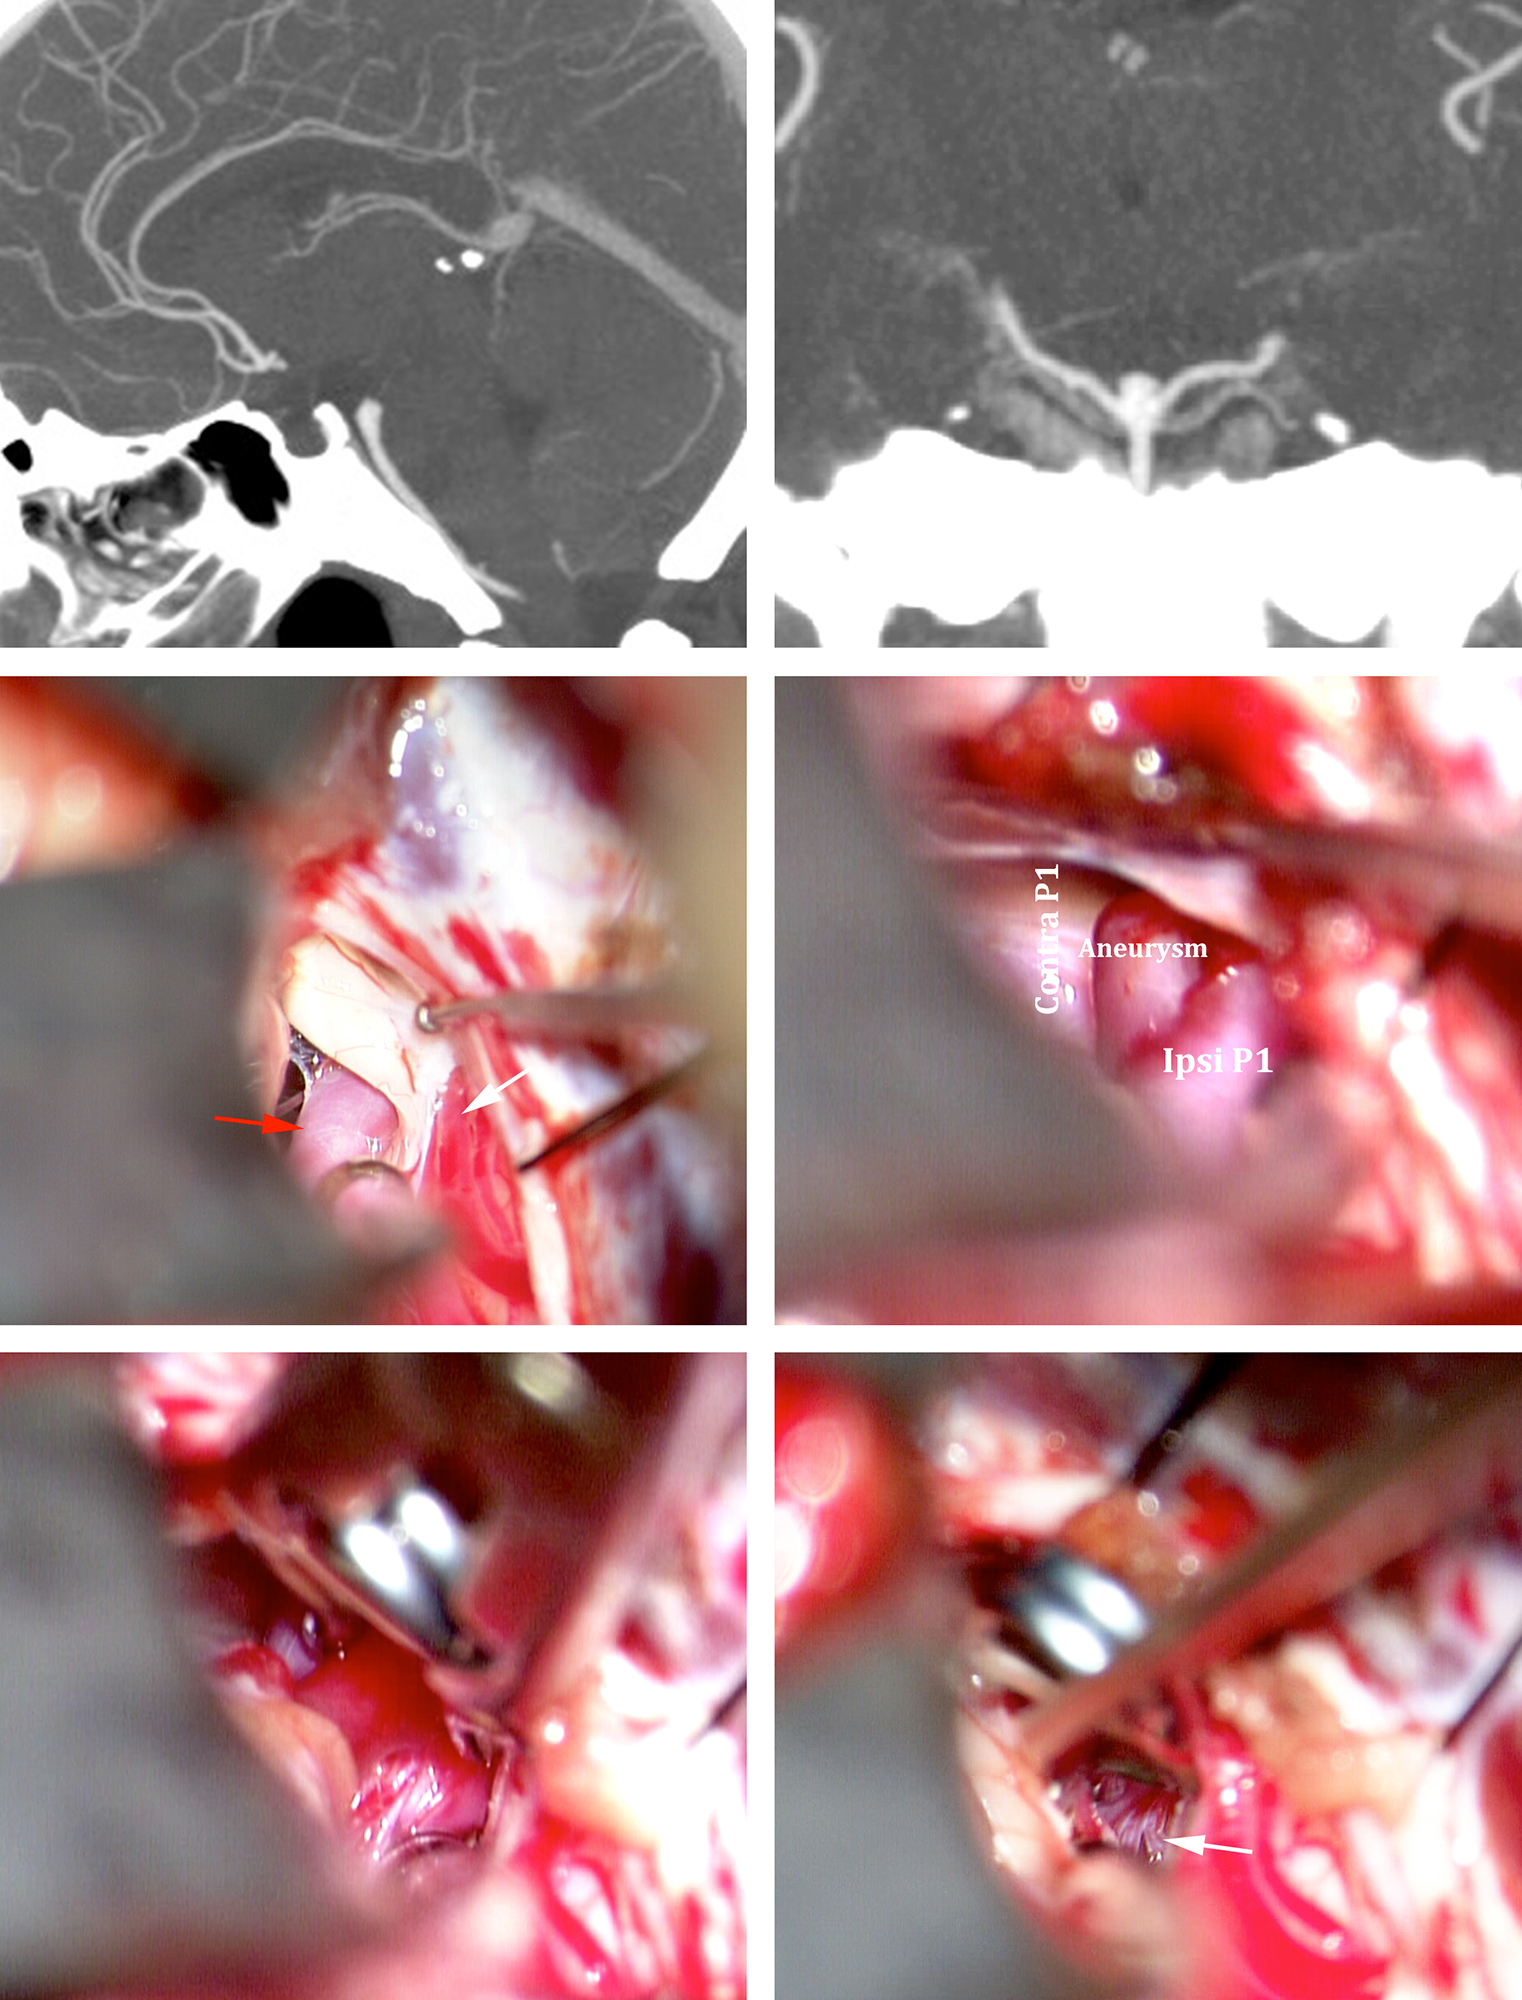 Figure 11: A low-lying basilar bifurcation aneurysm was tackled via a right-sided subtemporal approach (upper row). The oculomotor nerve is the cornerstone landmark for this approach; the PCA (red arrow) and SCA (white arrow) were identified based on the nerve (center of the field) (middle row). Two tentorial sutures were used to retract the tentorium while a small tentorial incision between the sutures facilitated proximal control over the basilar trunk. A straight fenestrated clip kept the ipsilateral P1 and its perforators out of harm's way (lower row-white arrow).